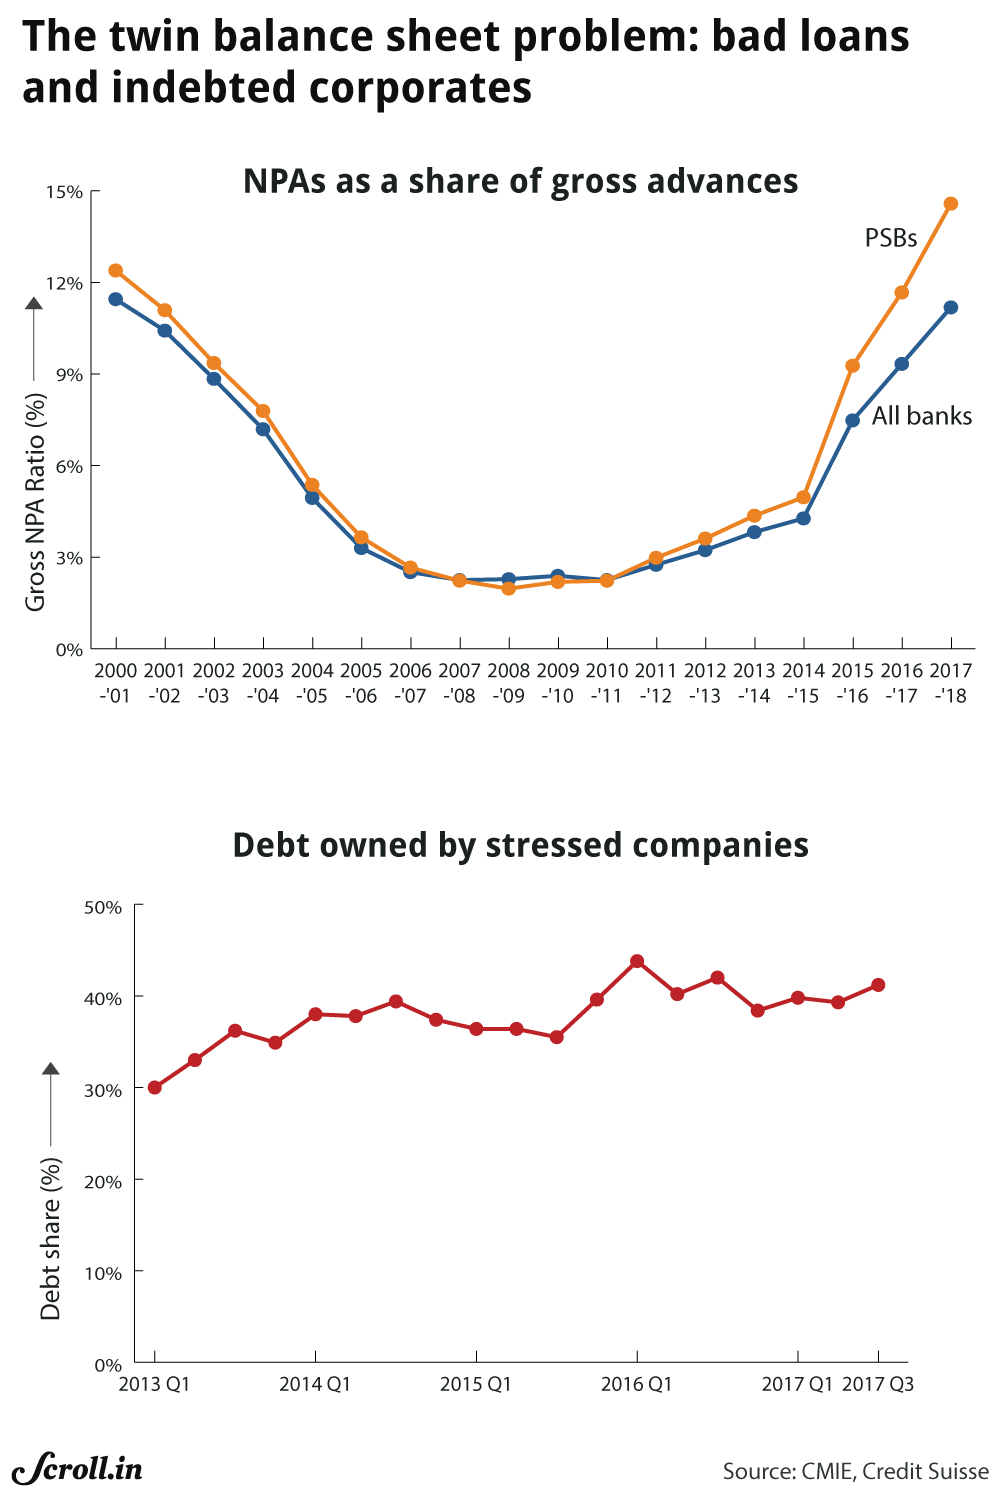 Non-performing assets and debt burden